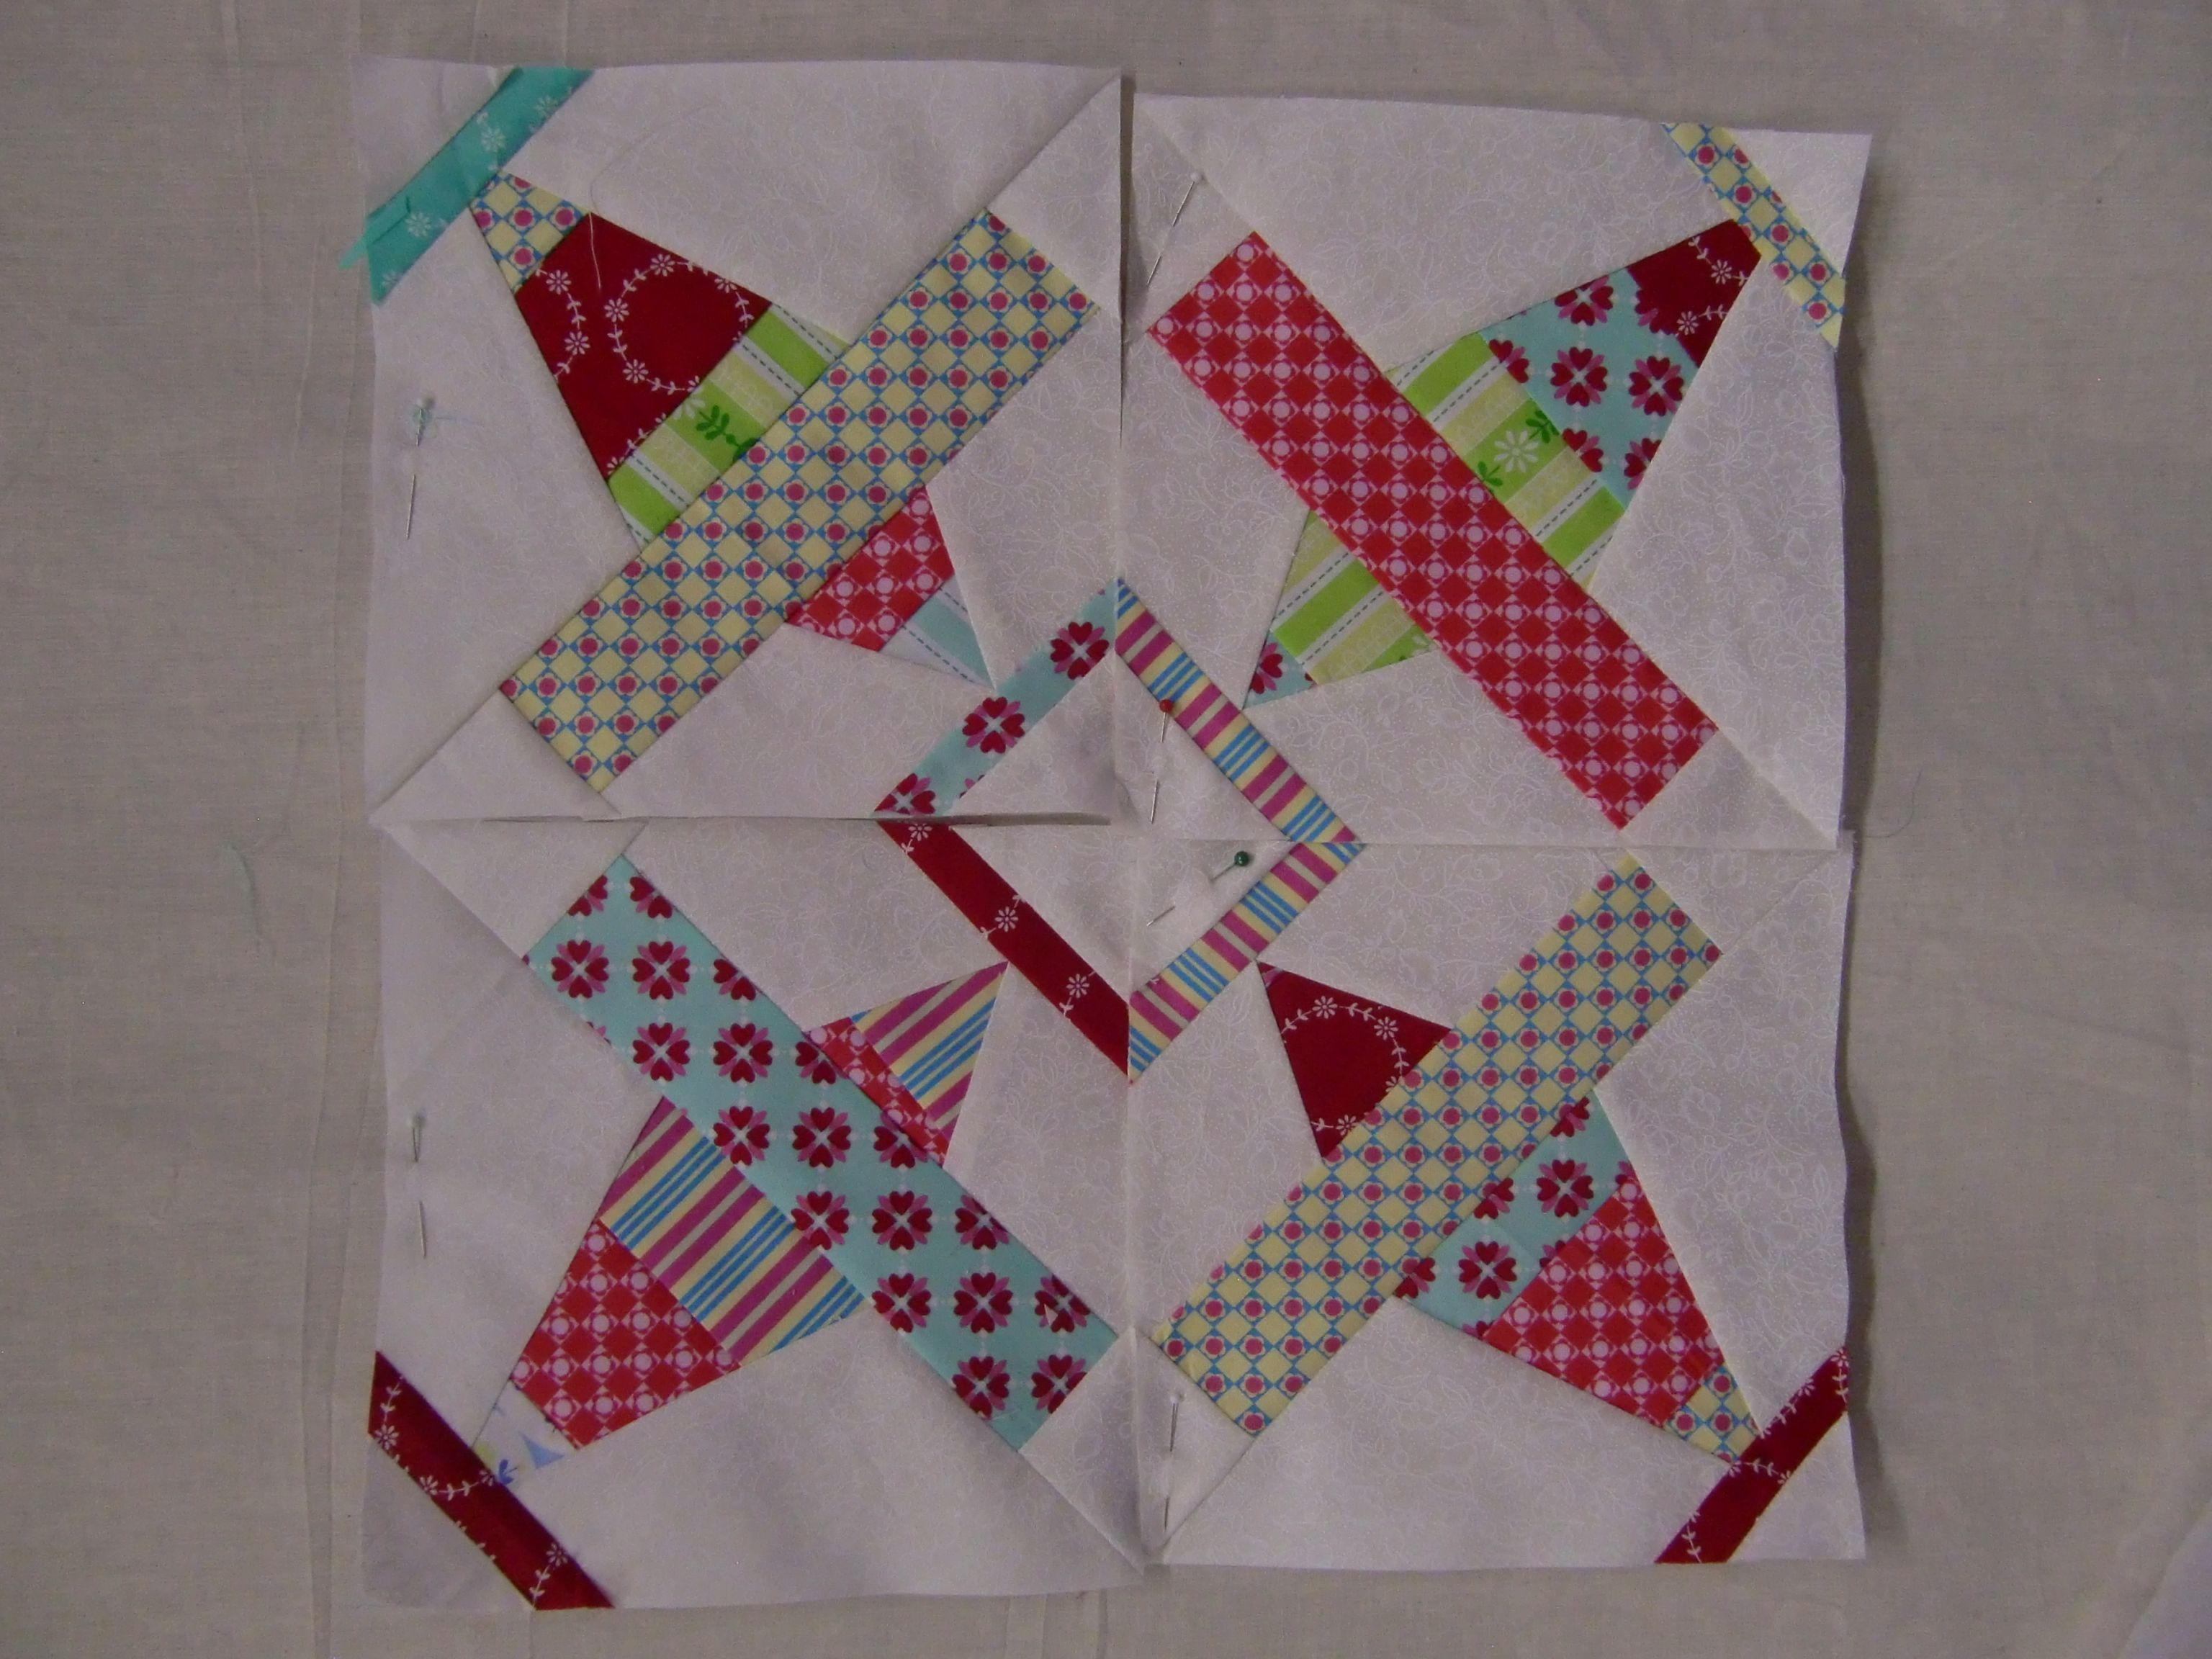 Airplane Blocks, which I could find the source . . .